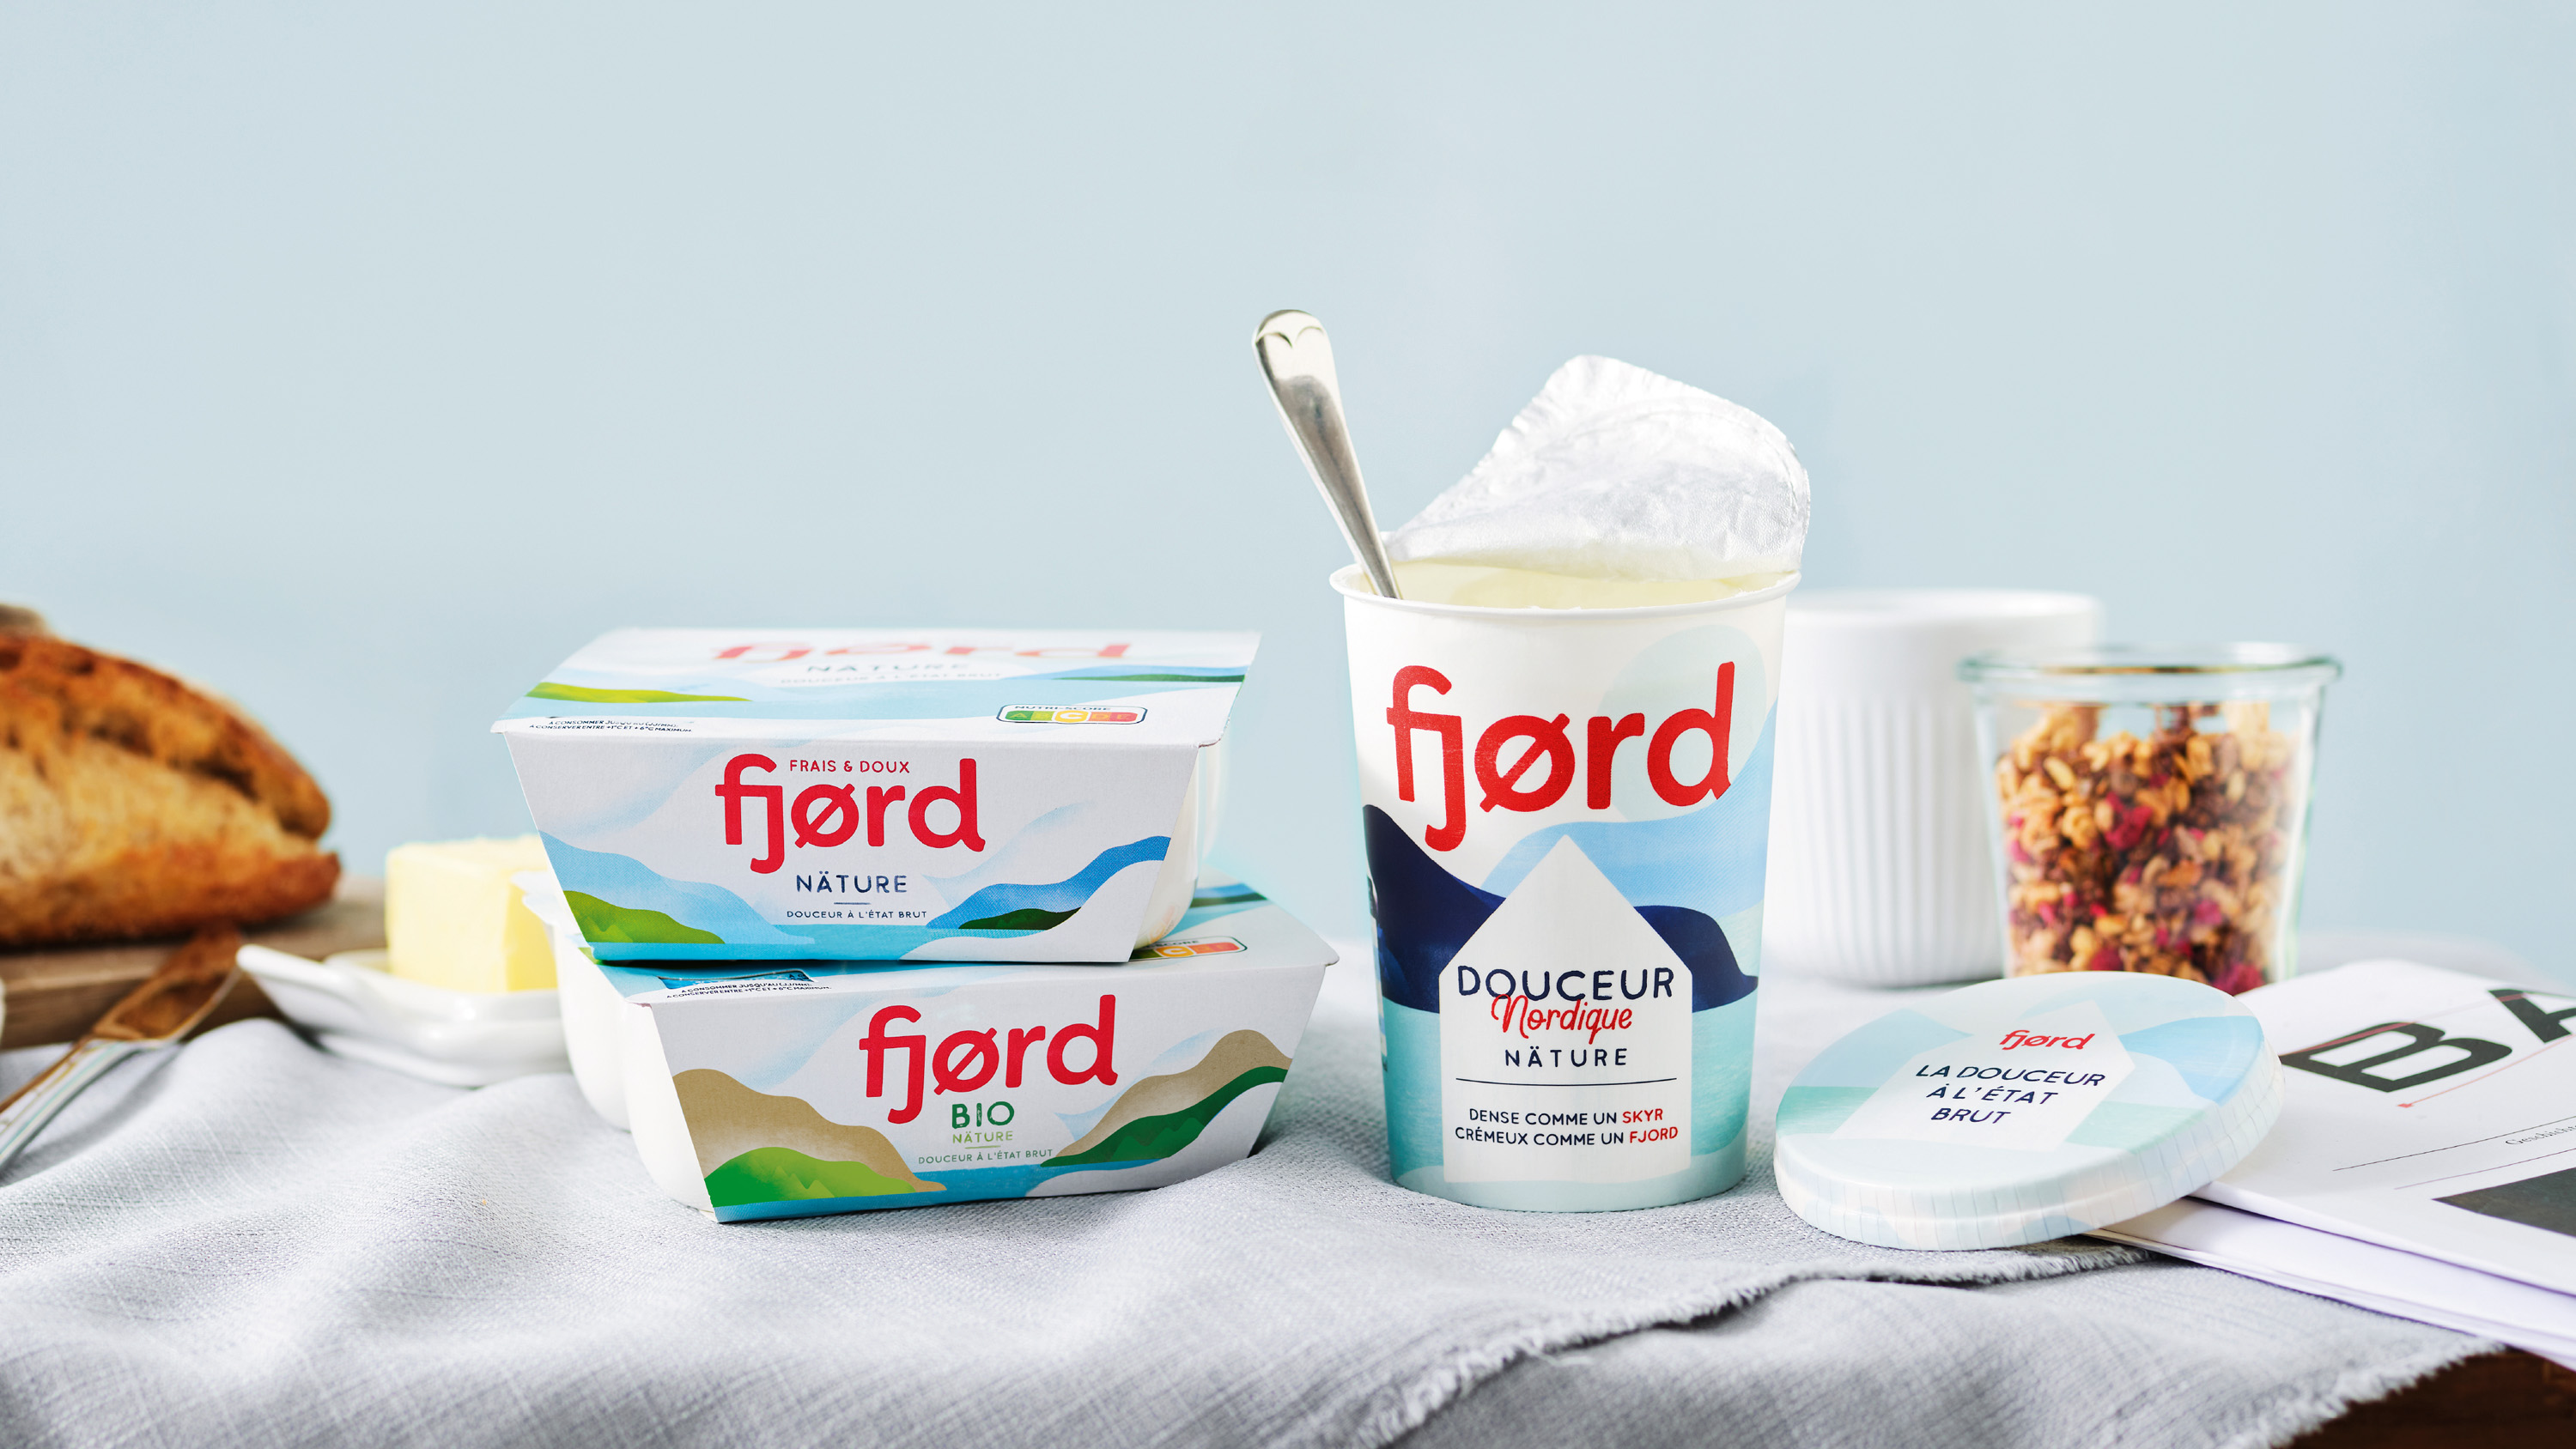 Born in Scandinavia Perfected in France – The New Design for Danone Fjørd by Everland